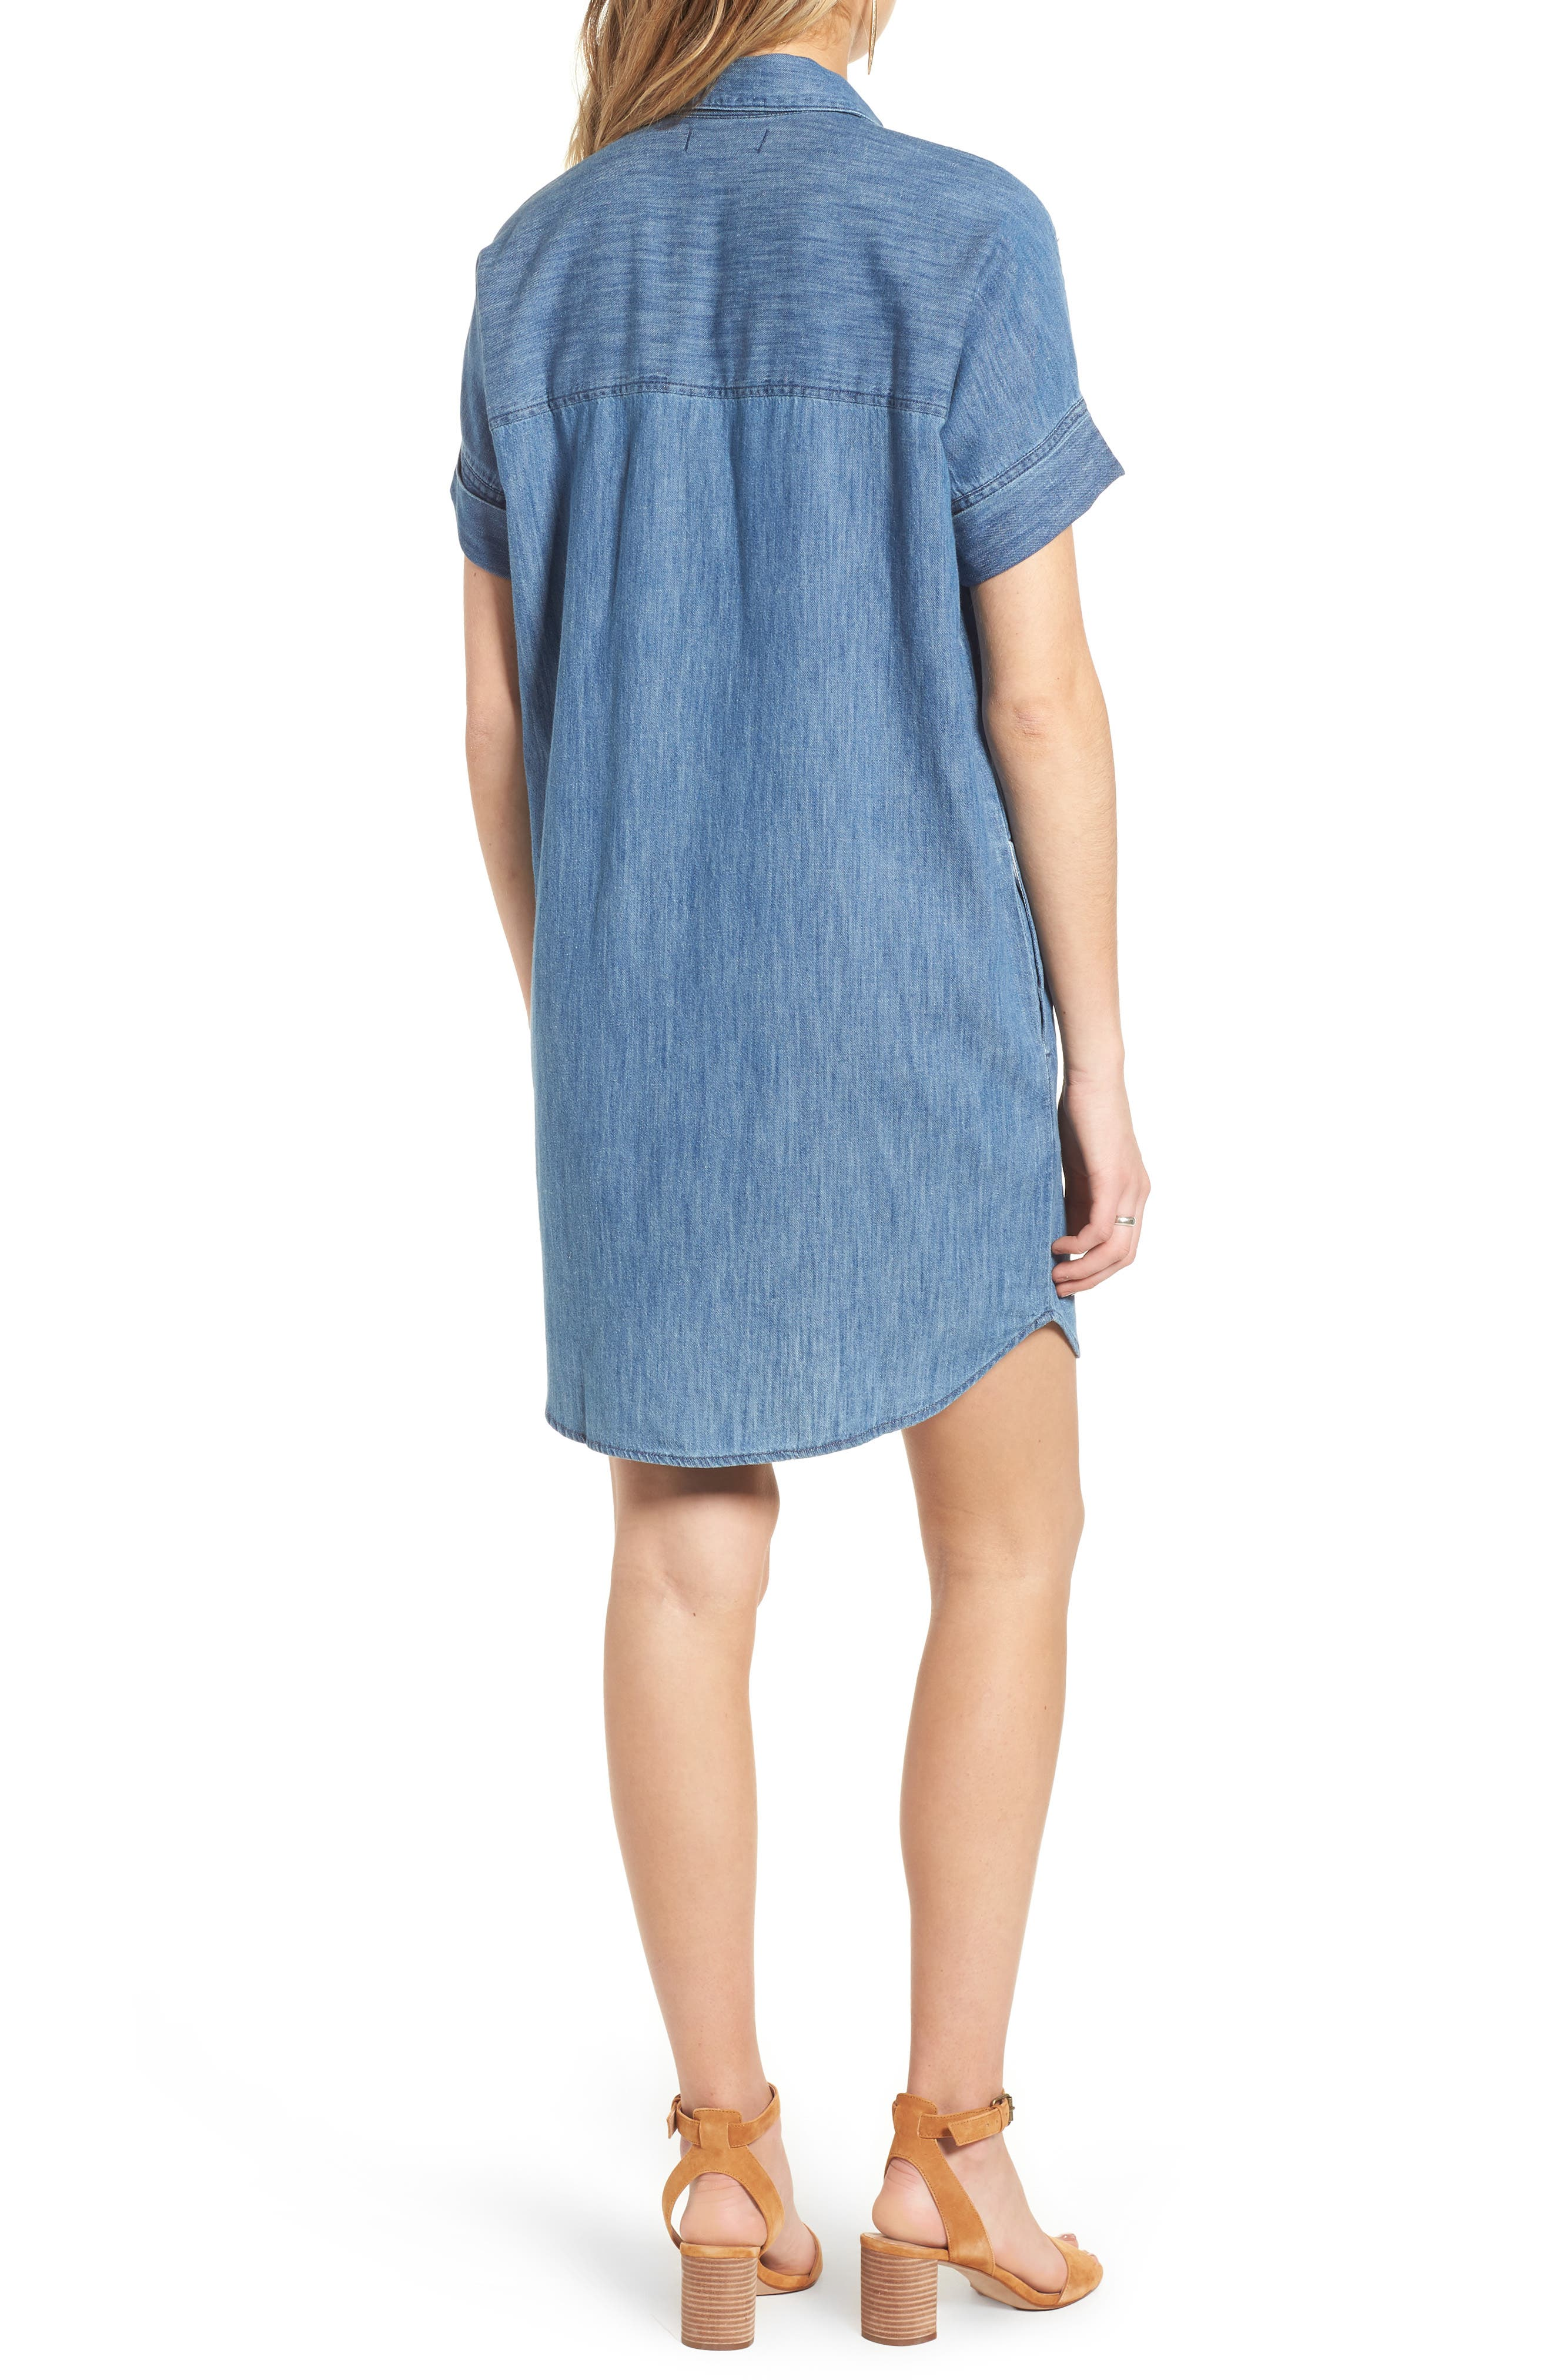 MADEWELL, Courier Denim Shirtdress, Alternate thumbnail 2, color, 400